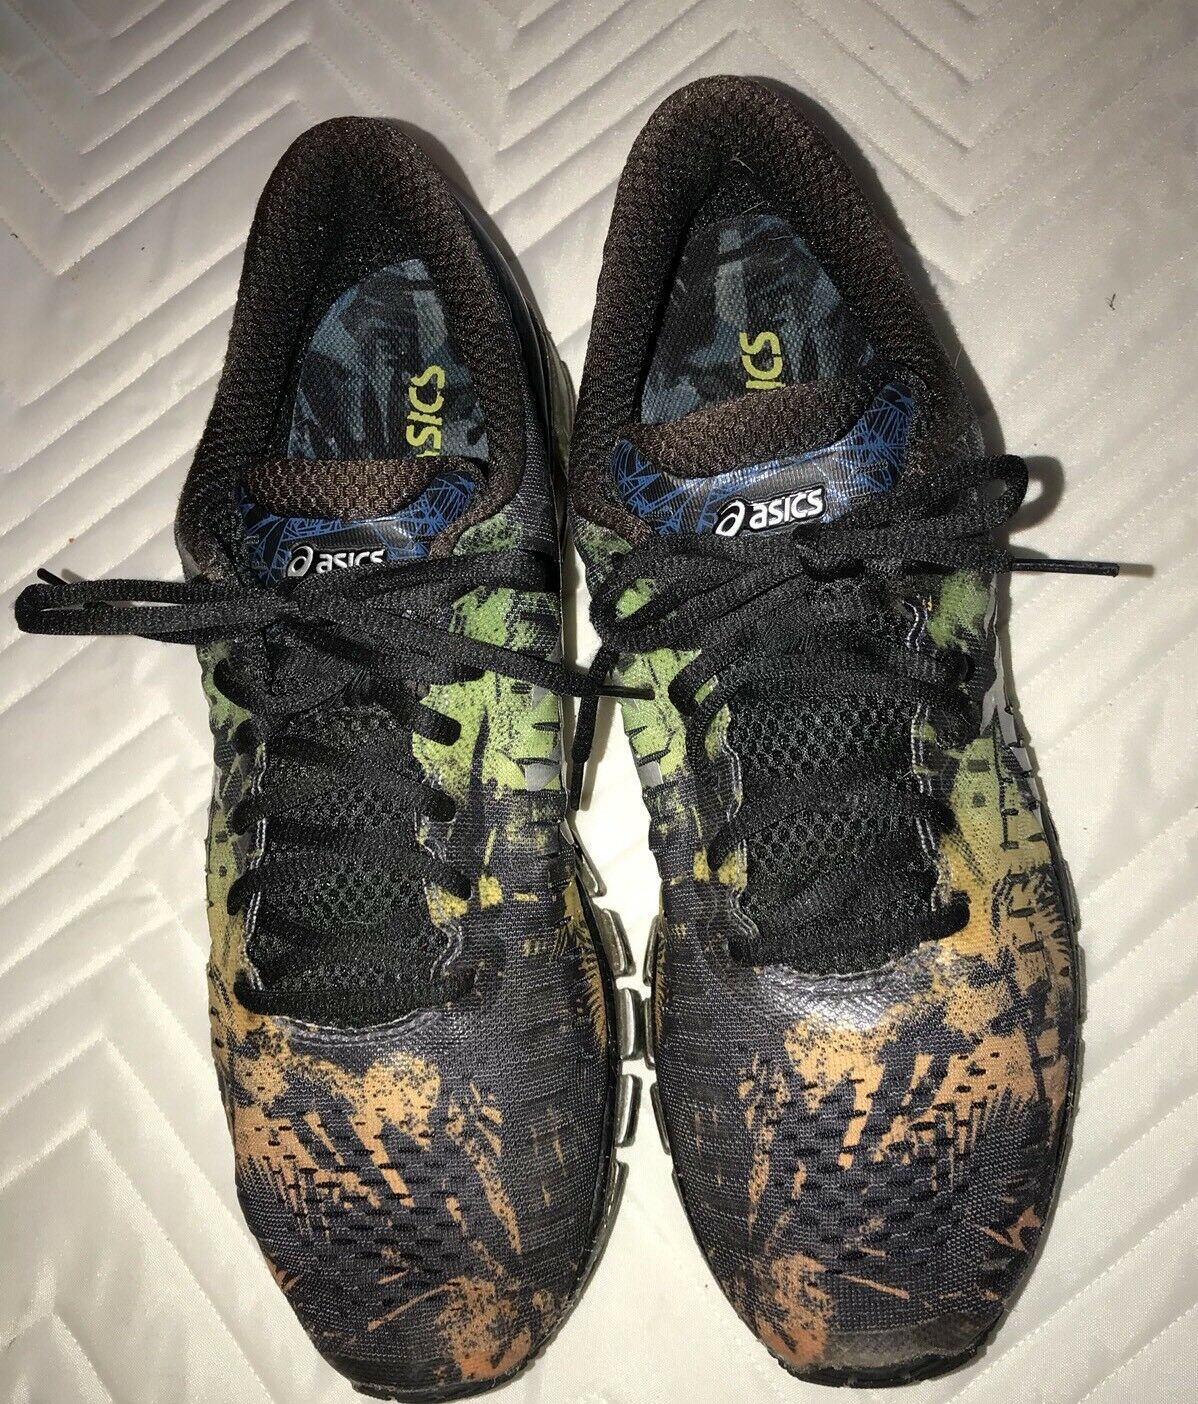 hommes ASICS Gel Quantum 360 Running Chaussures T5J1N - RealTree Camo -